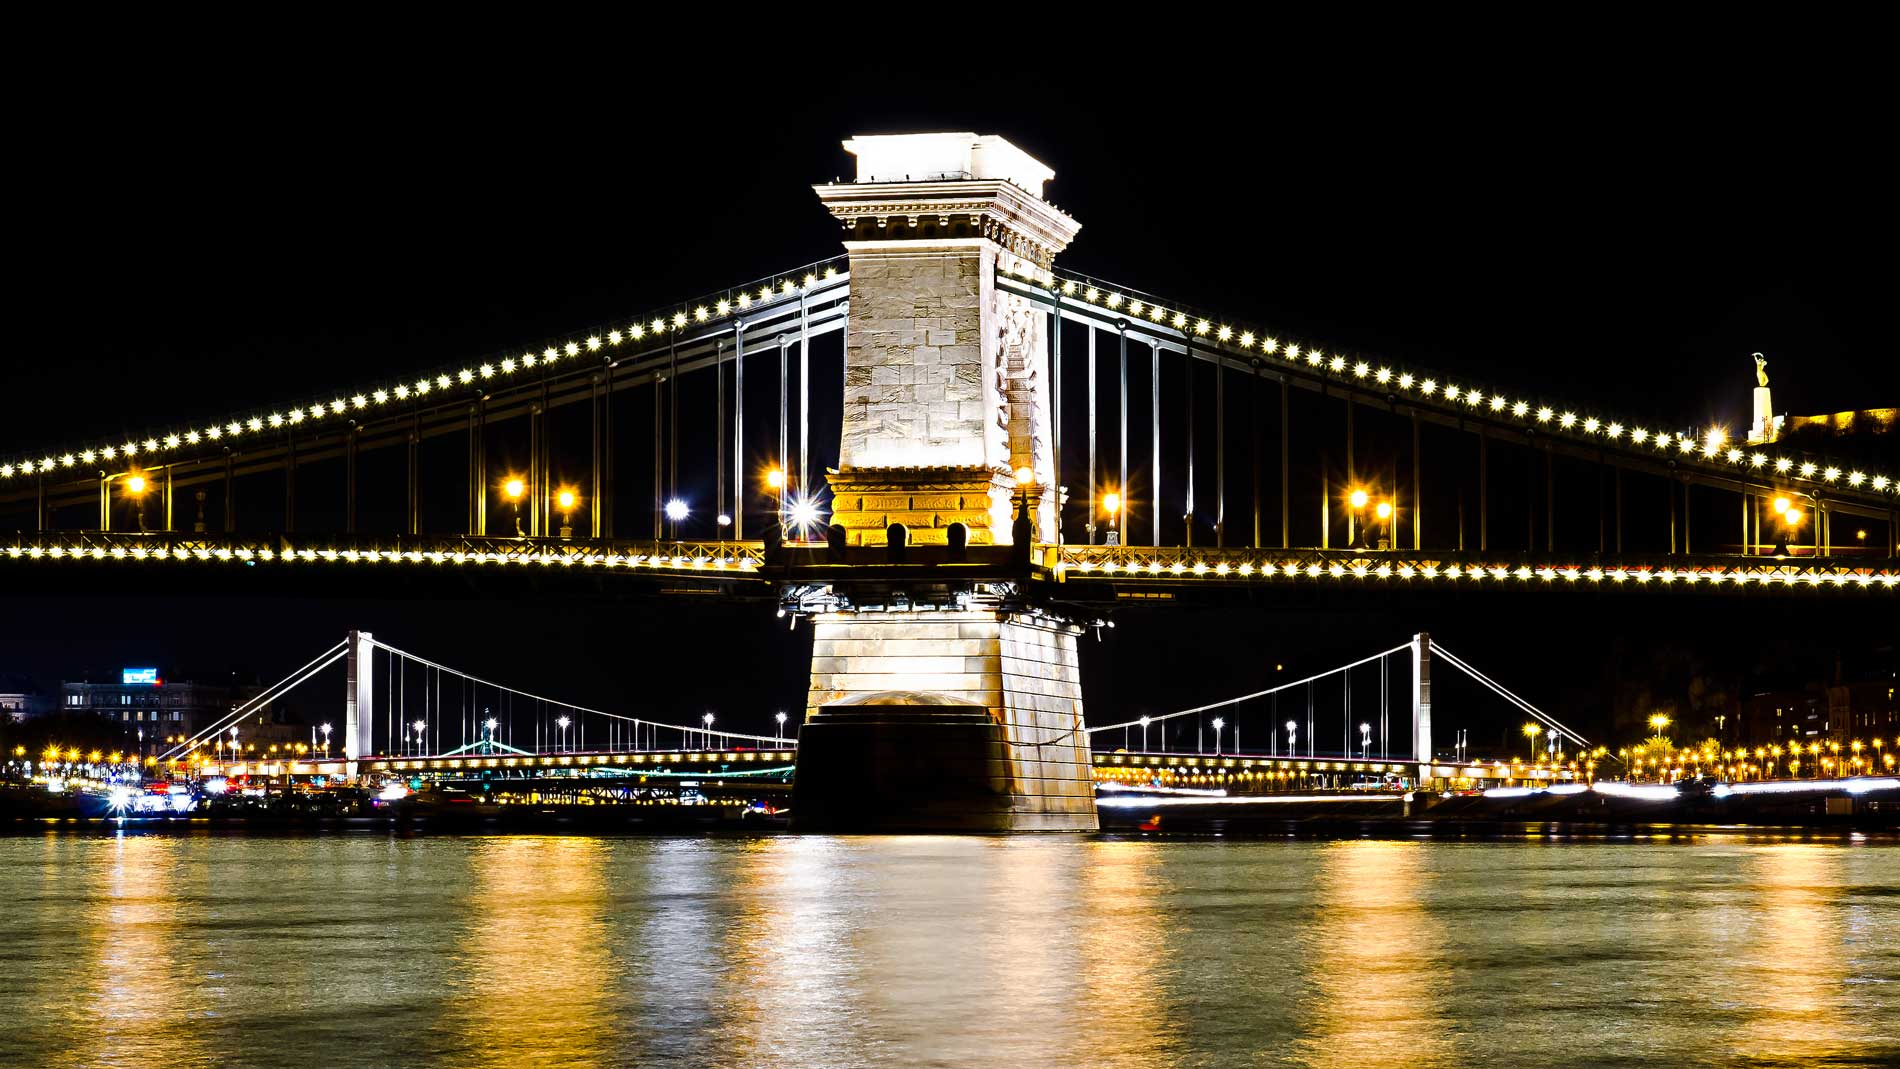 budapest_atthary_photography_danube_37